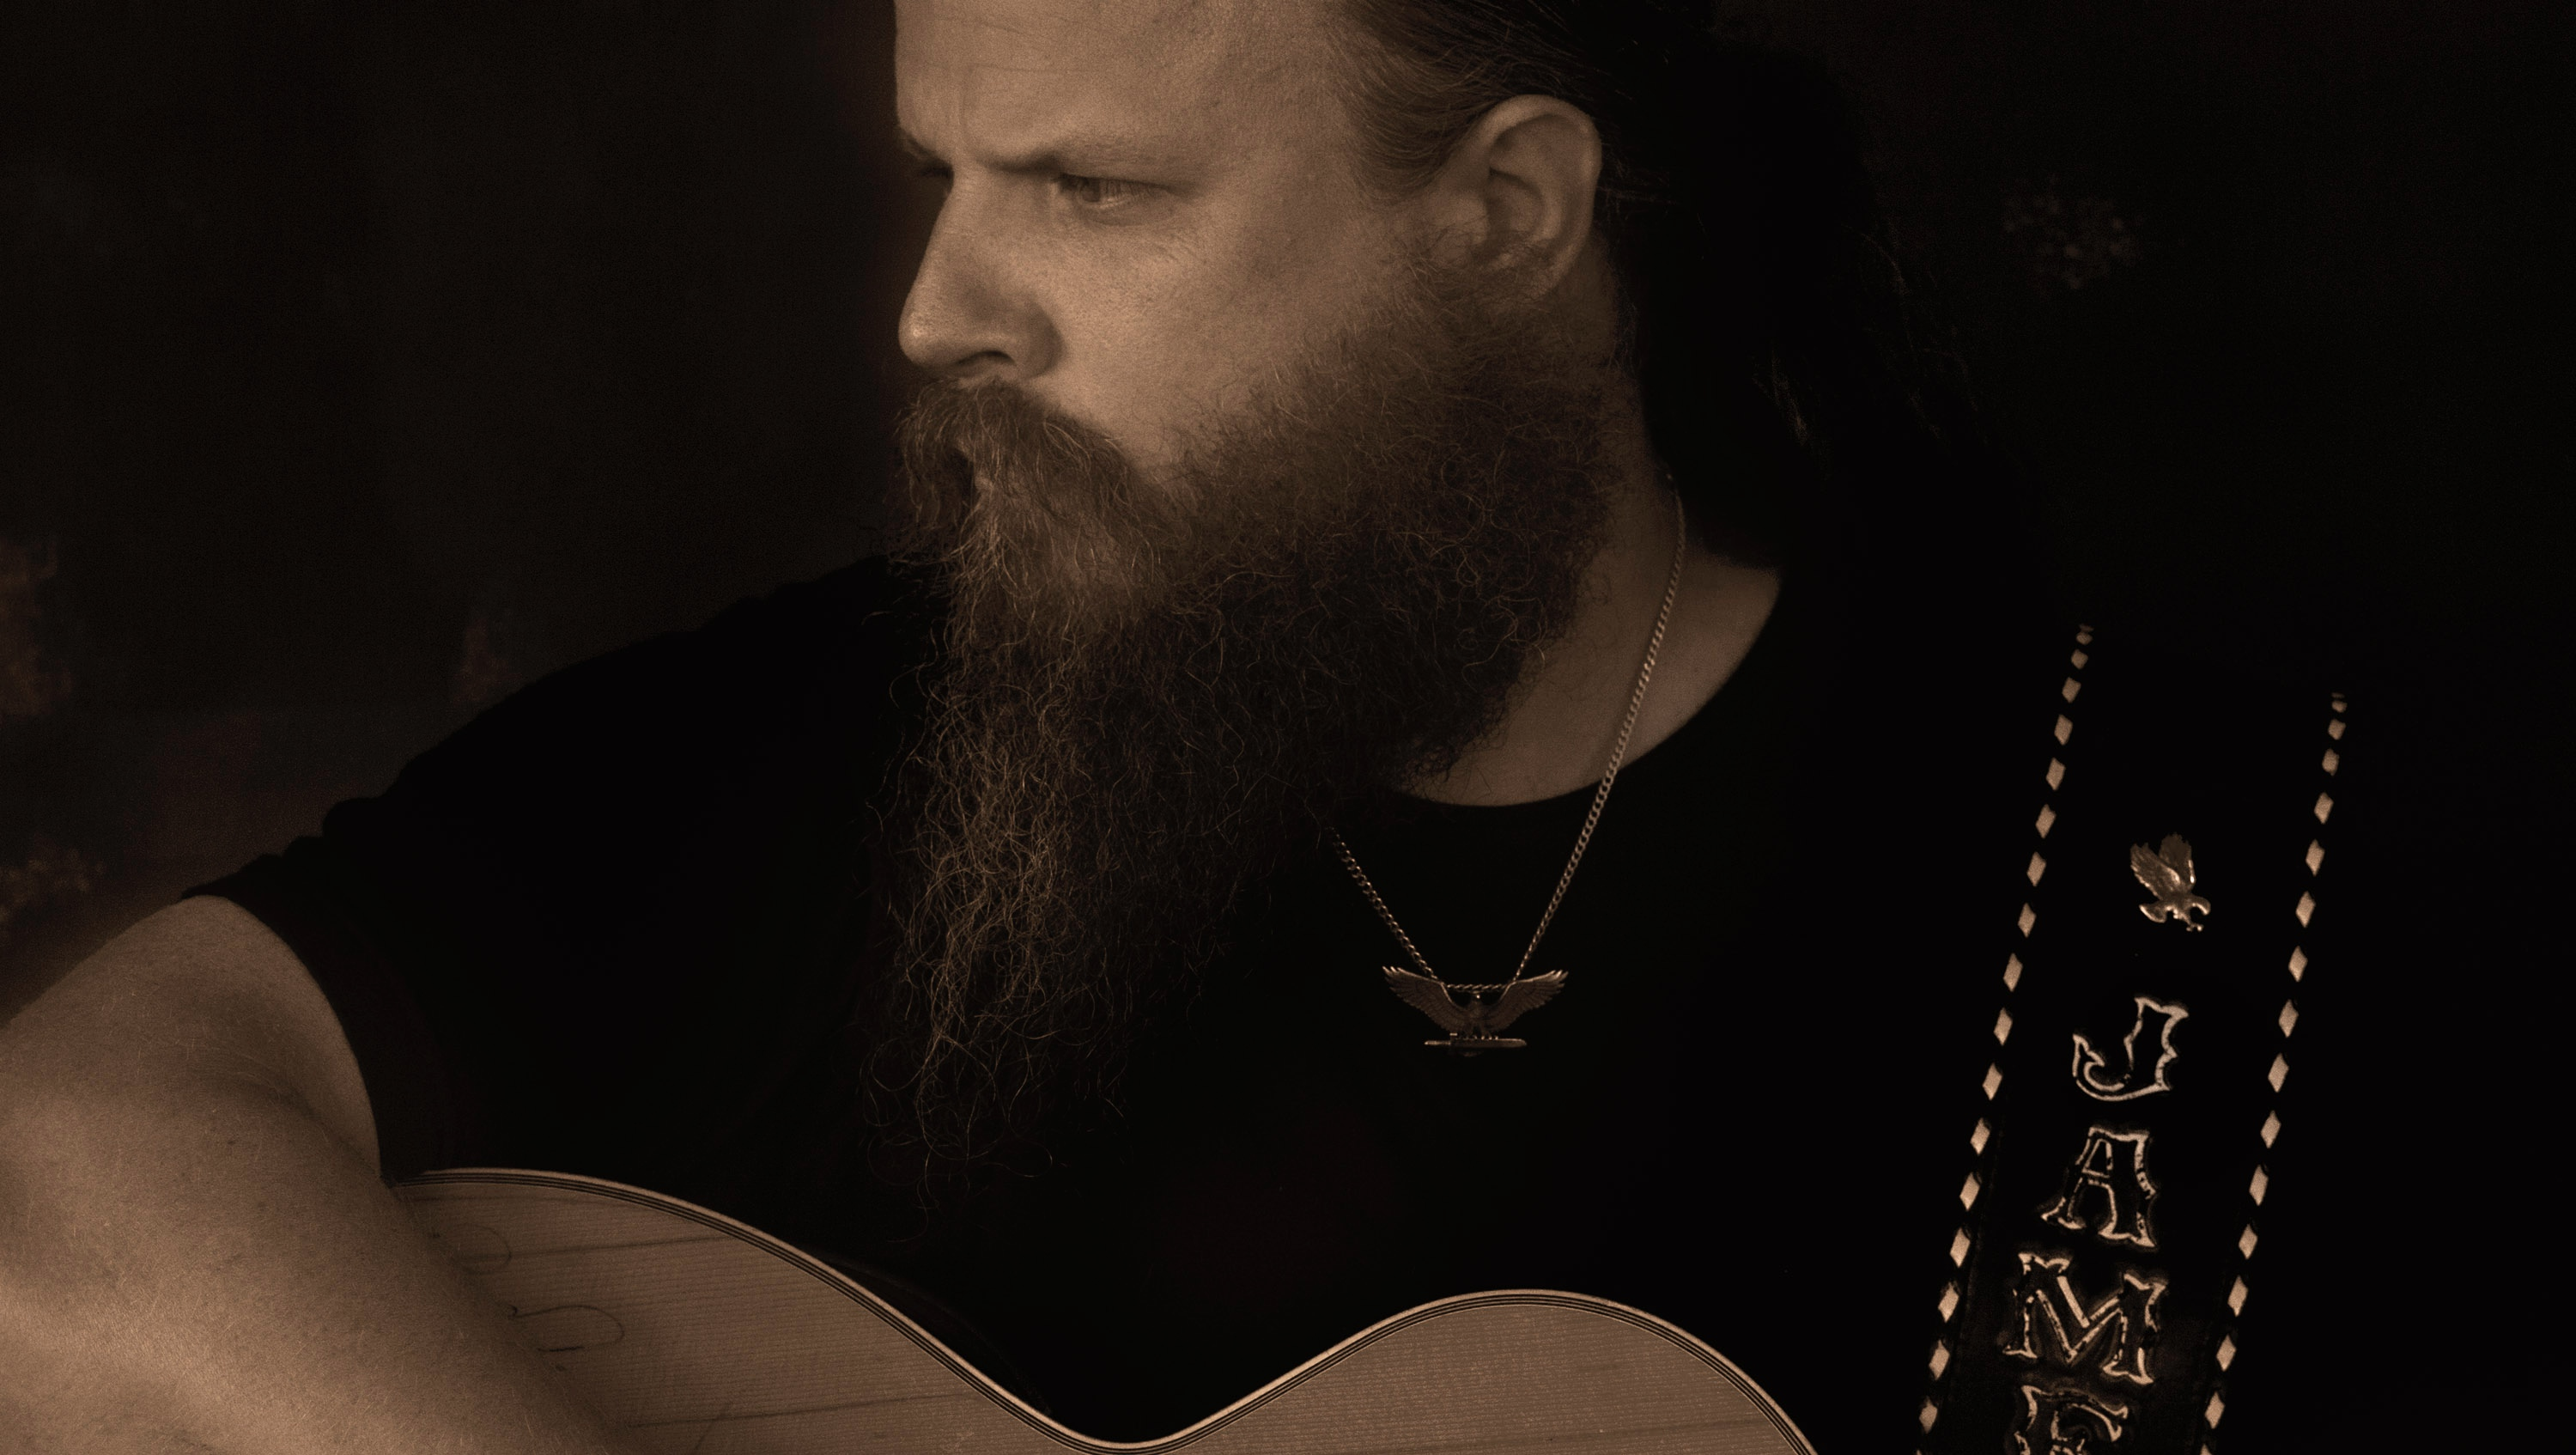 GIVEAWAY: Enter to win tickets to see Jamey Johnson @ the Wiltern (LA) 3/14